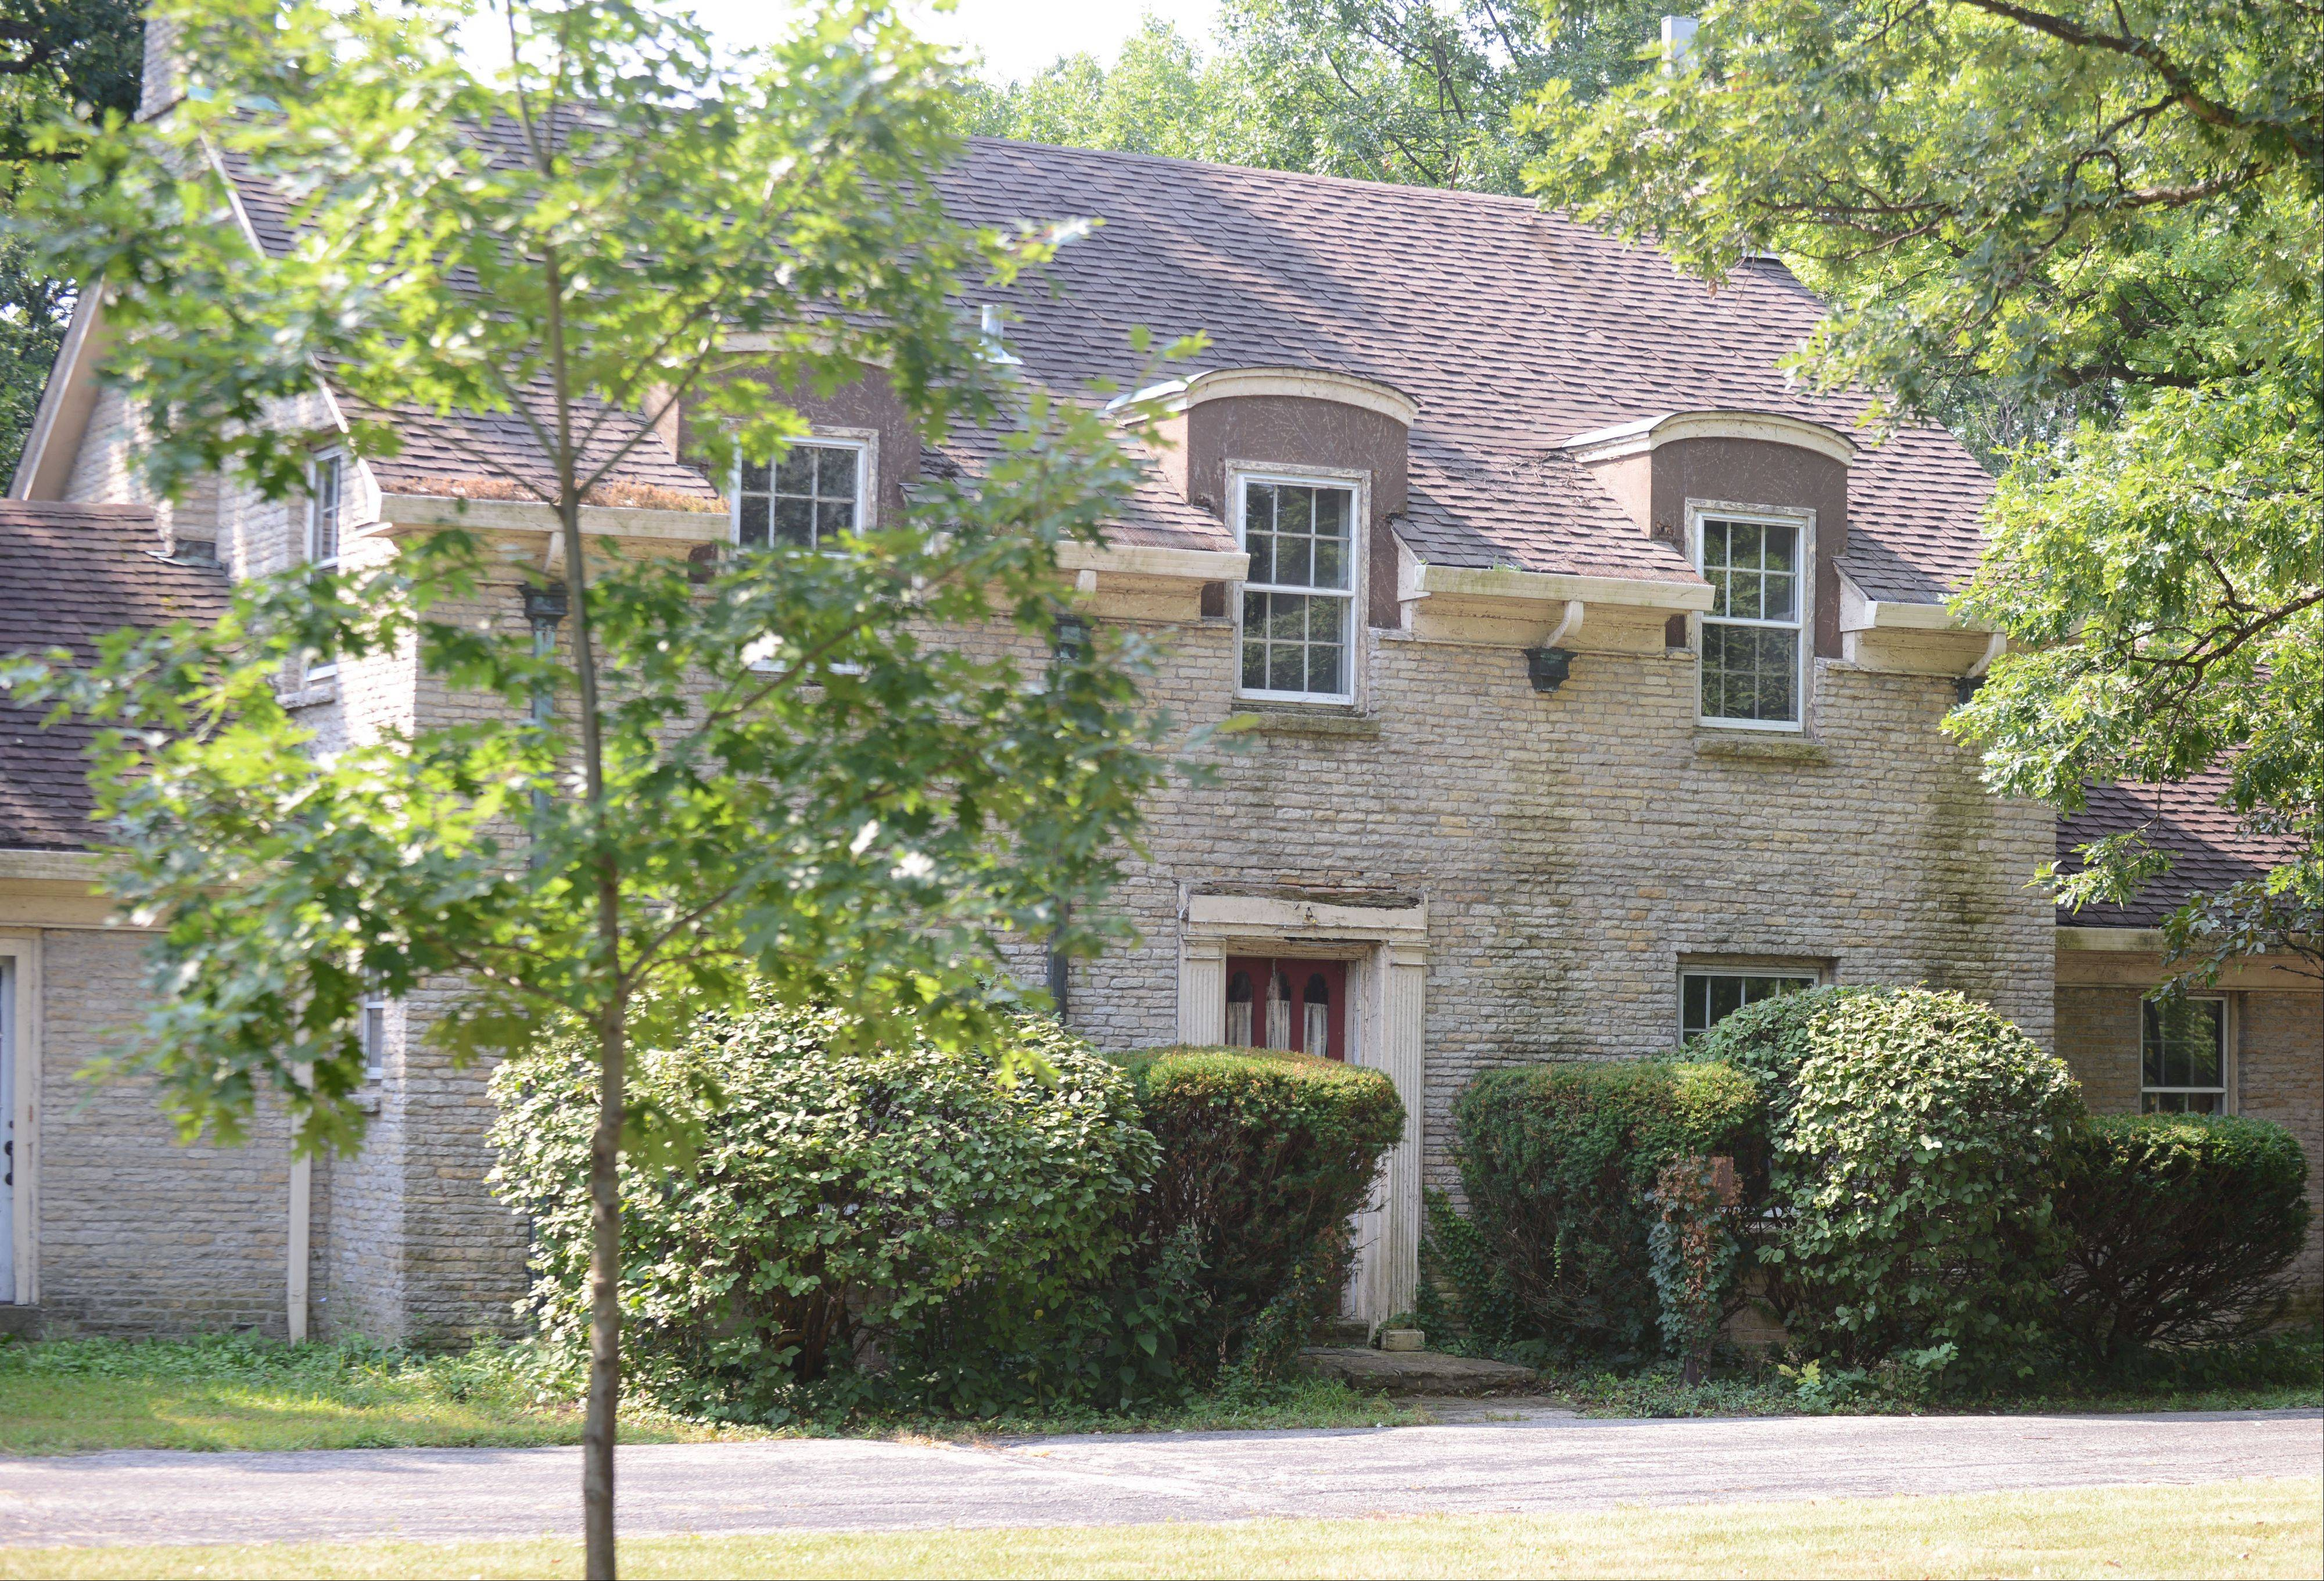 Consultant: McKee House can be saved for $1 million to $2 million